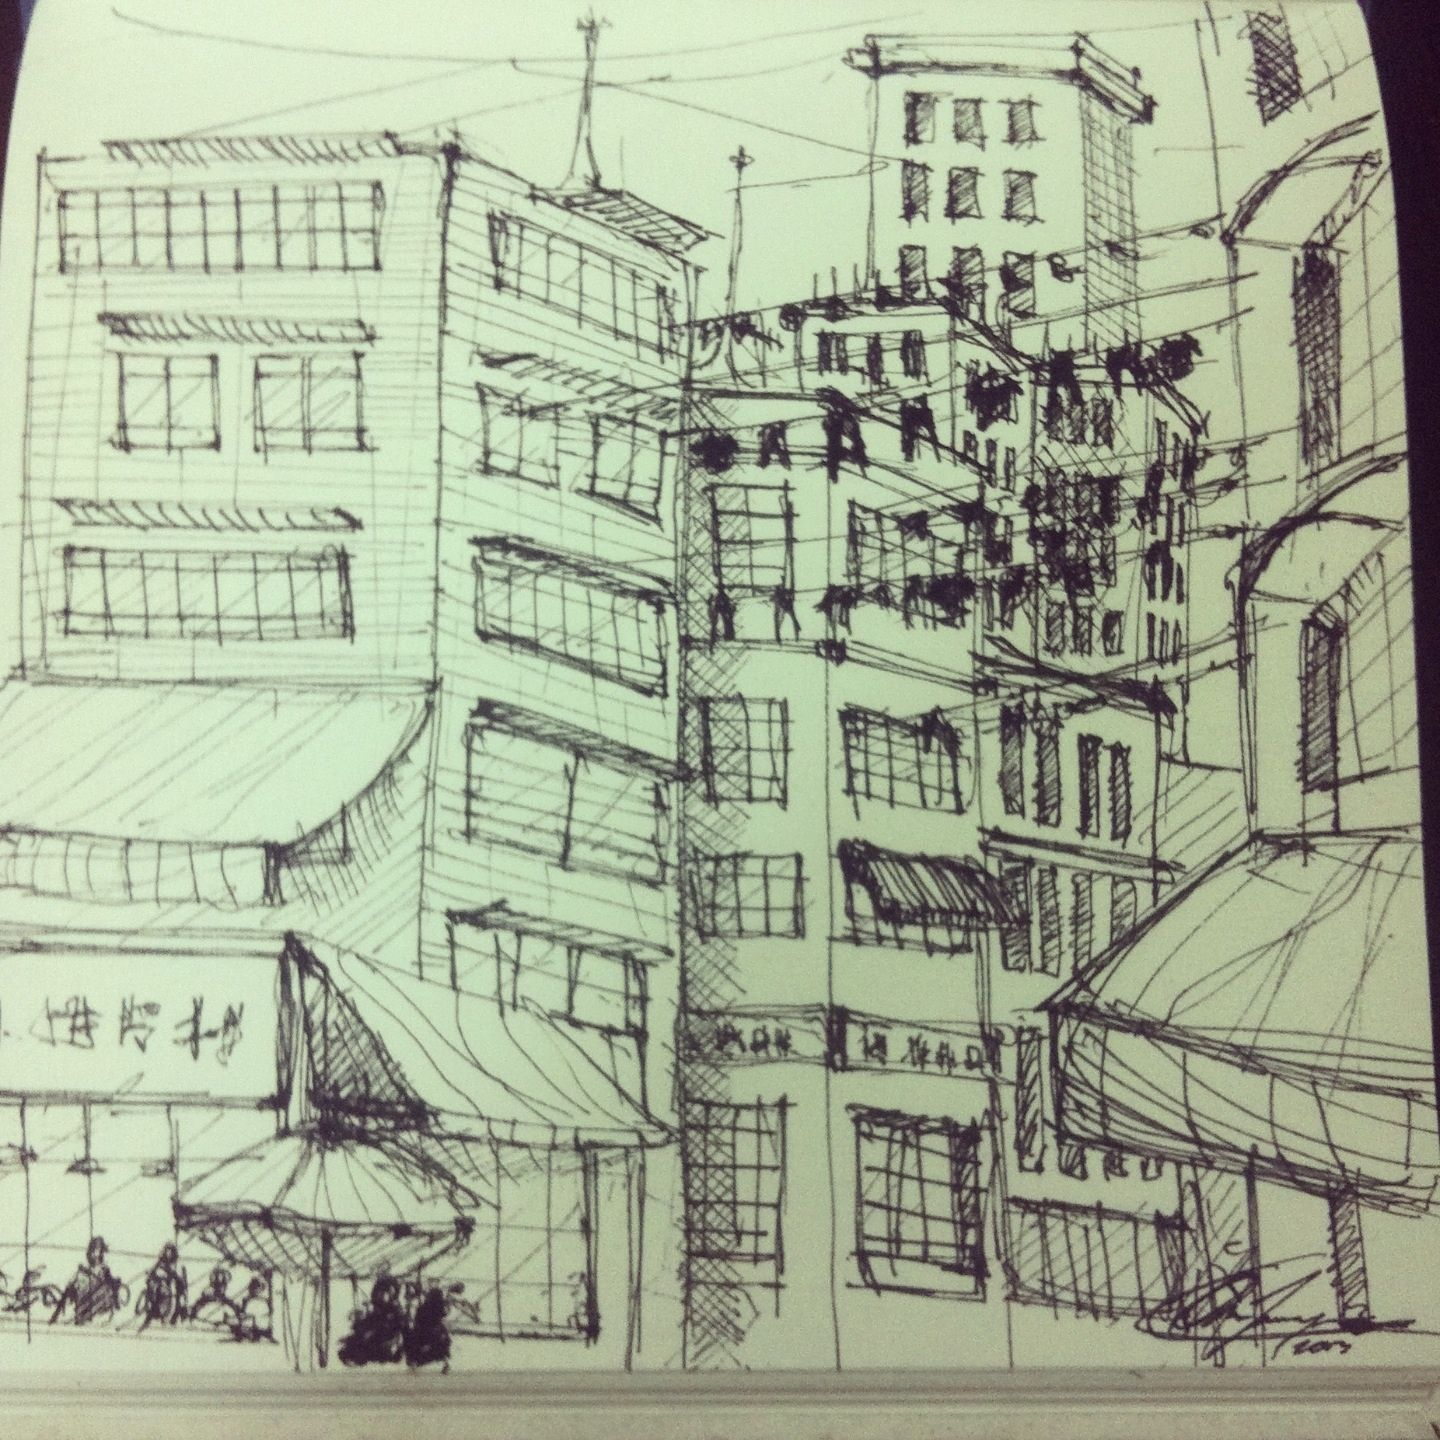 sketch book drawing city place shadows sky architecture mini